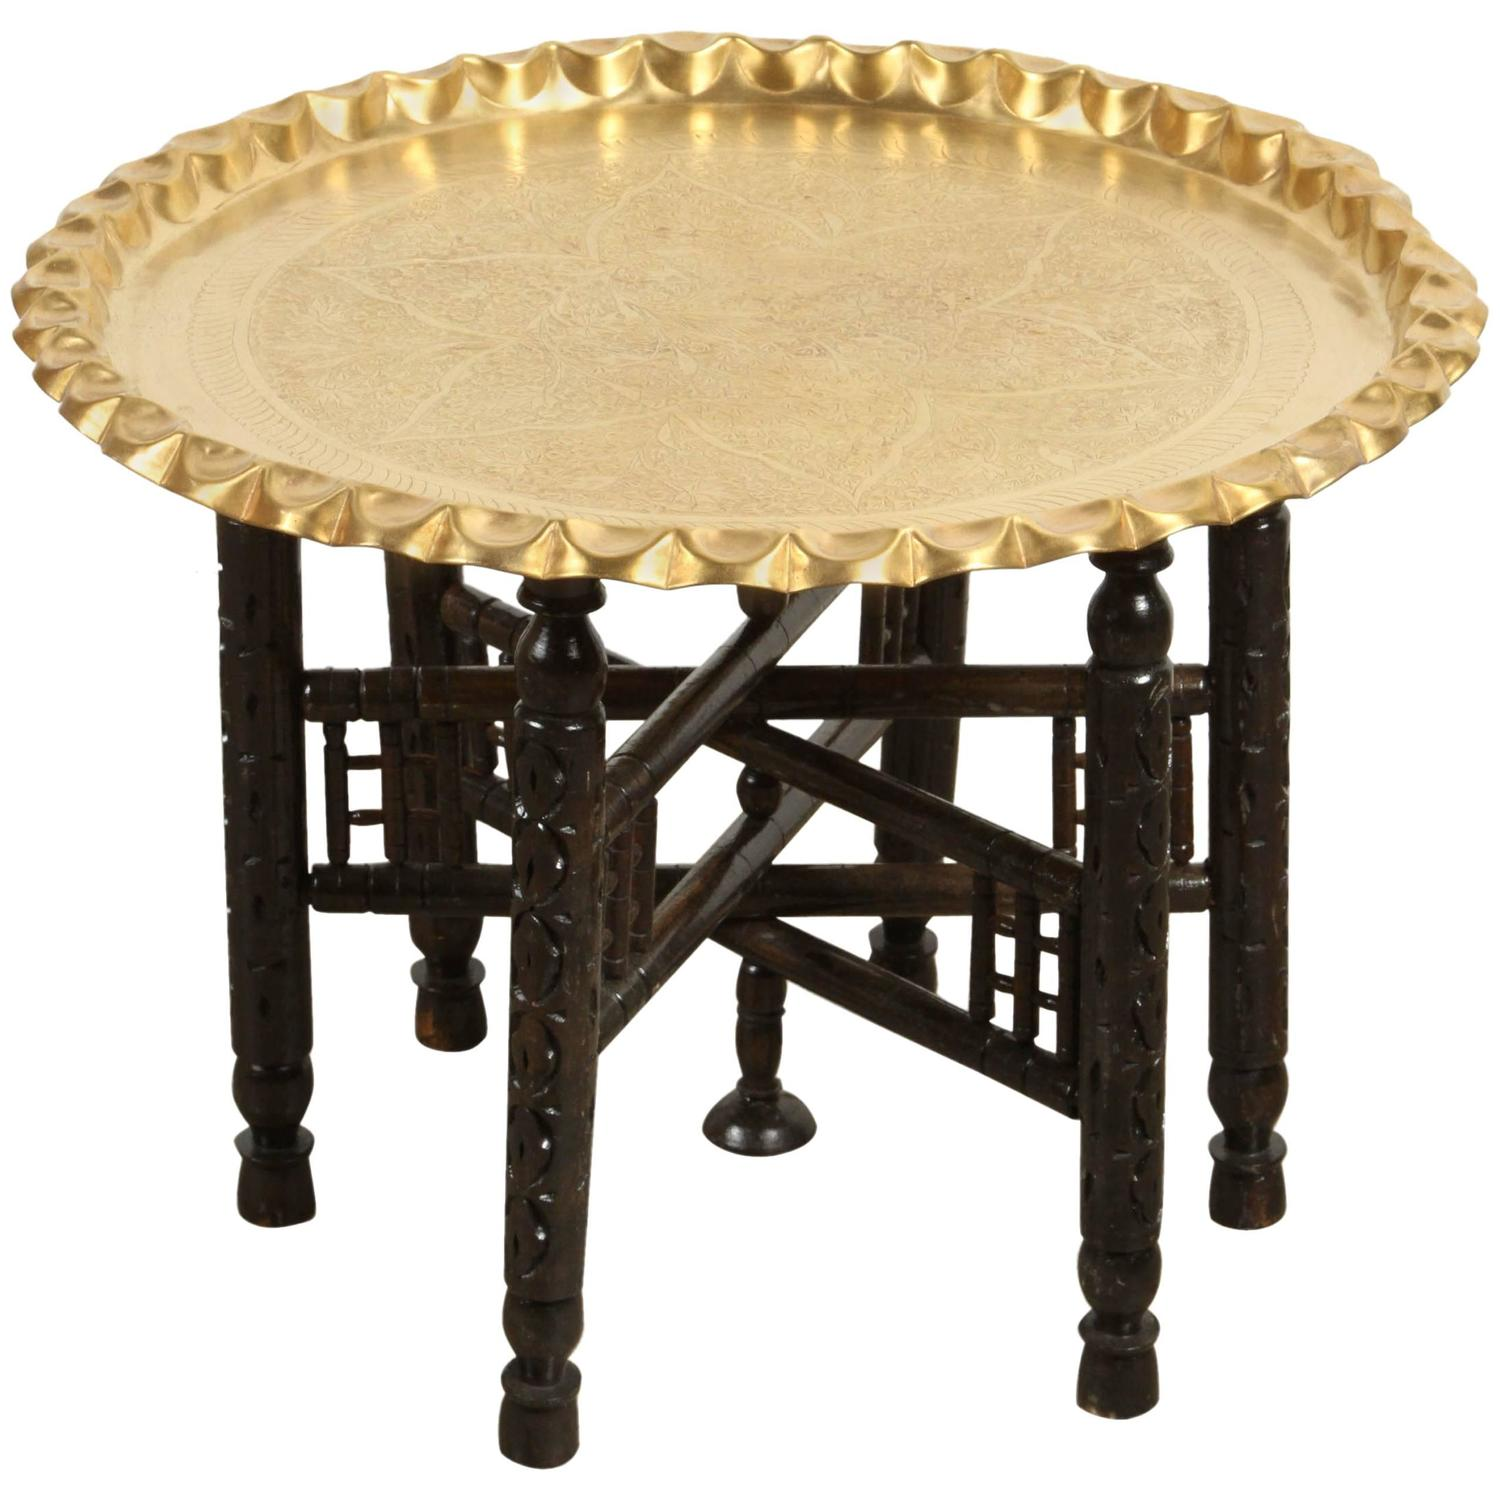 Vintage Moroccan Etched Brass Round Tray Table For Sale at 1stdibs